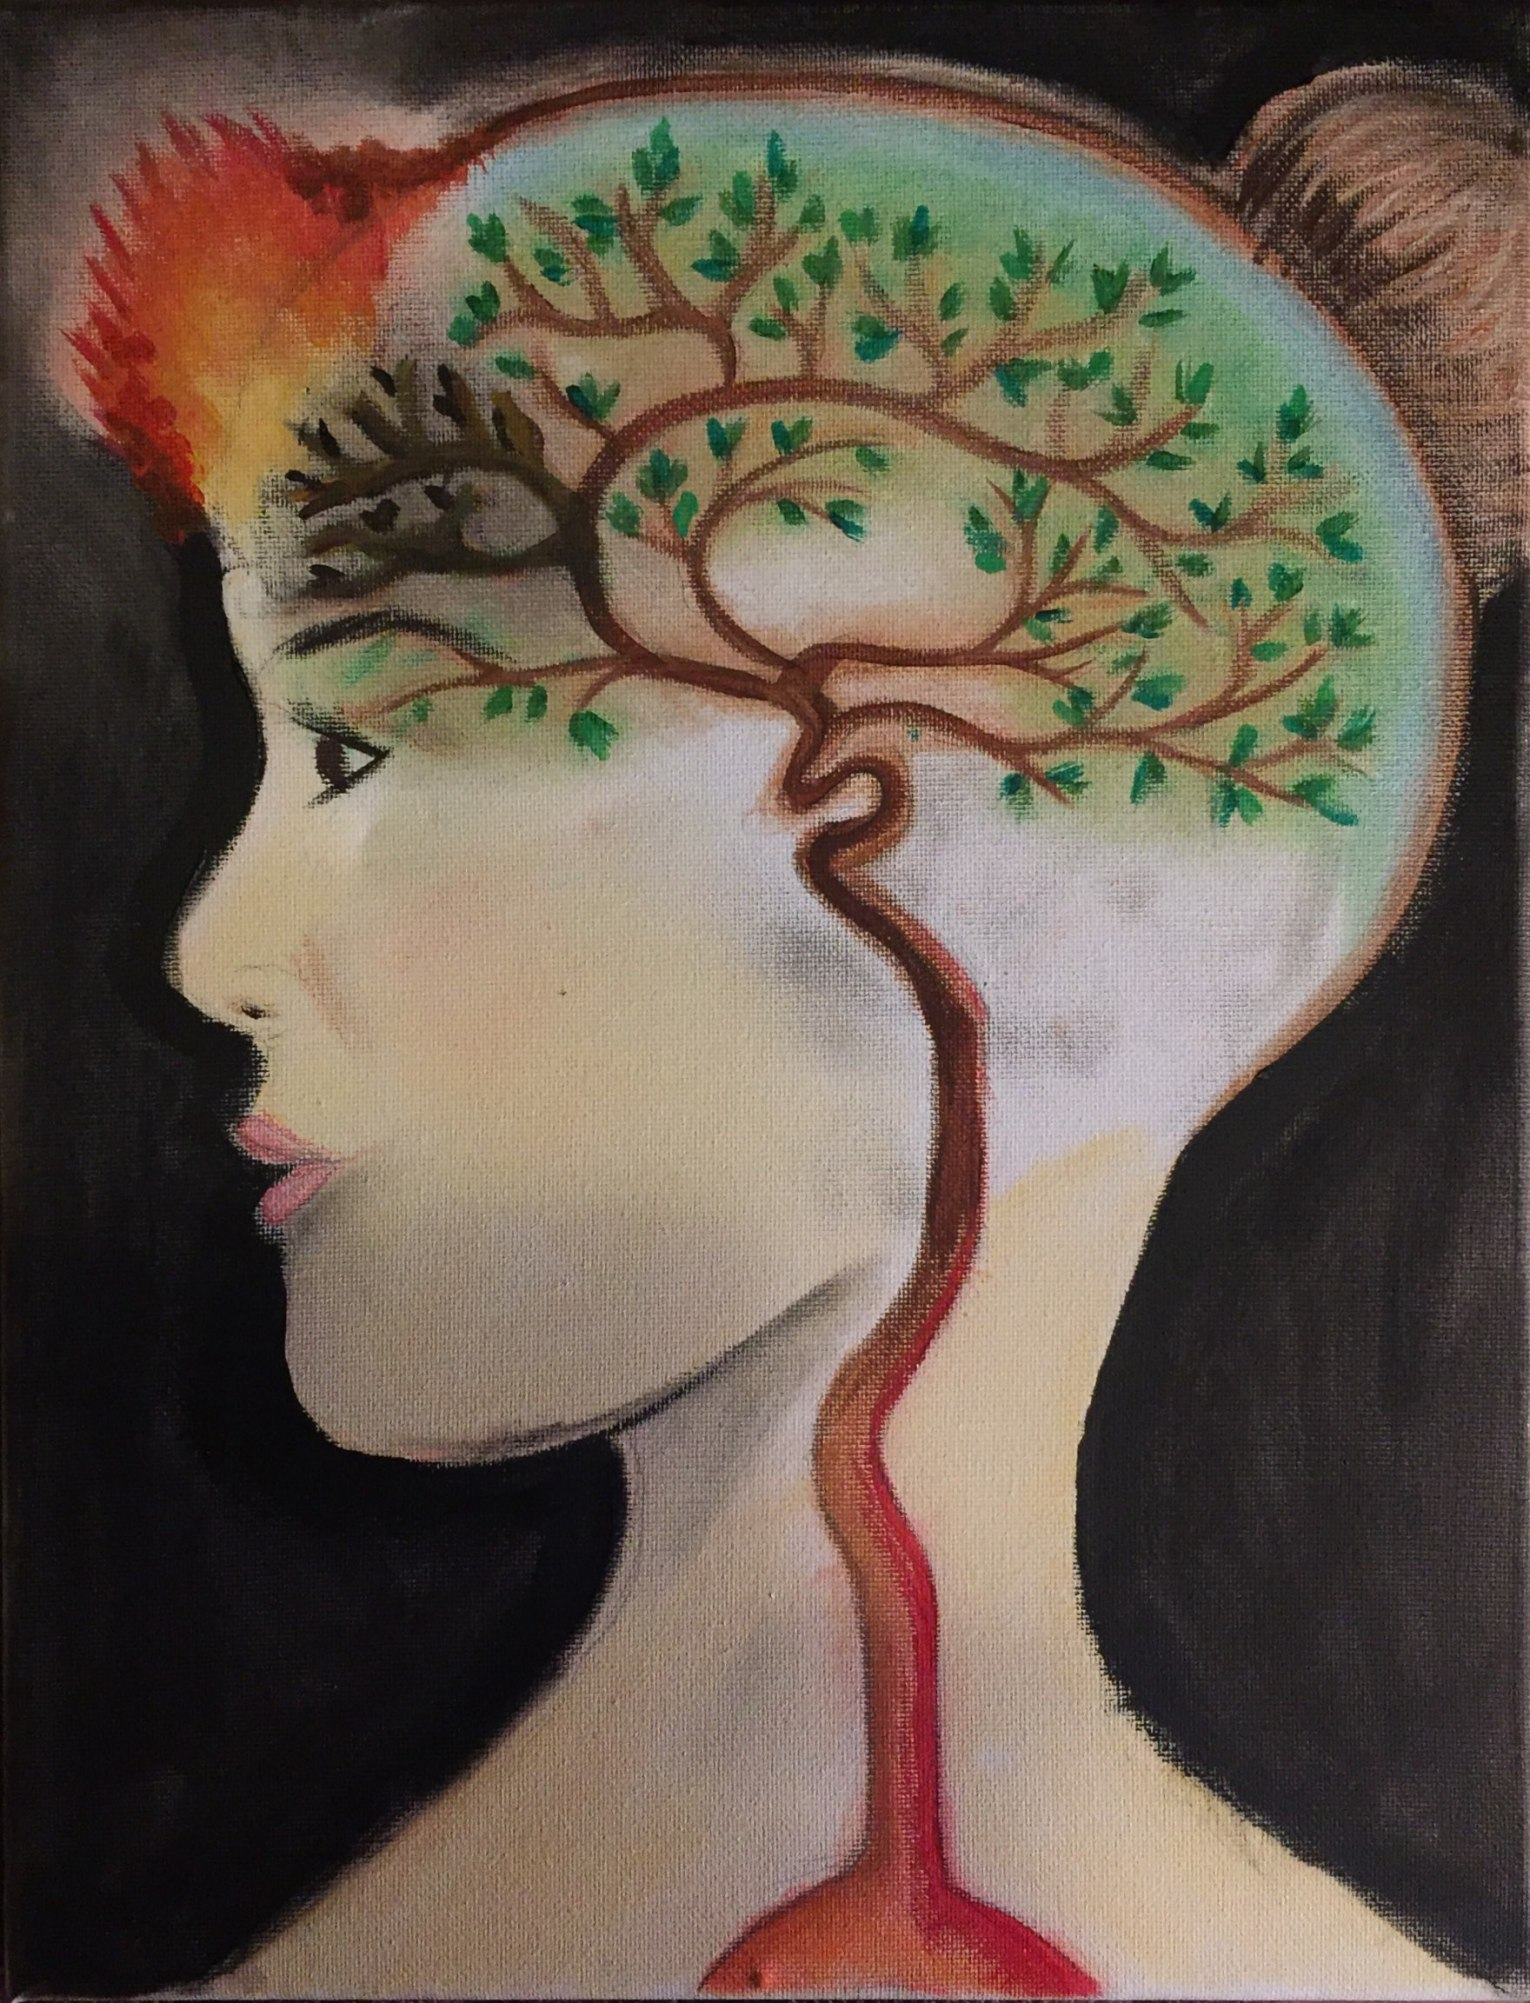 Painting of a woman's head. In her brain is a tree, with branches, mimicking blood vessels. Her forehead has flames shooting out.